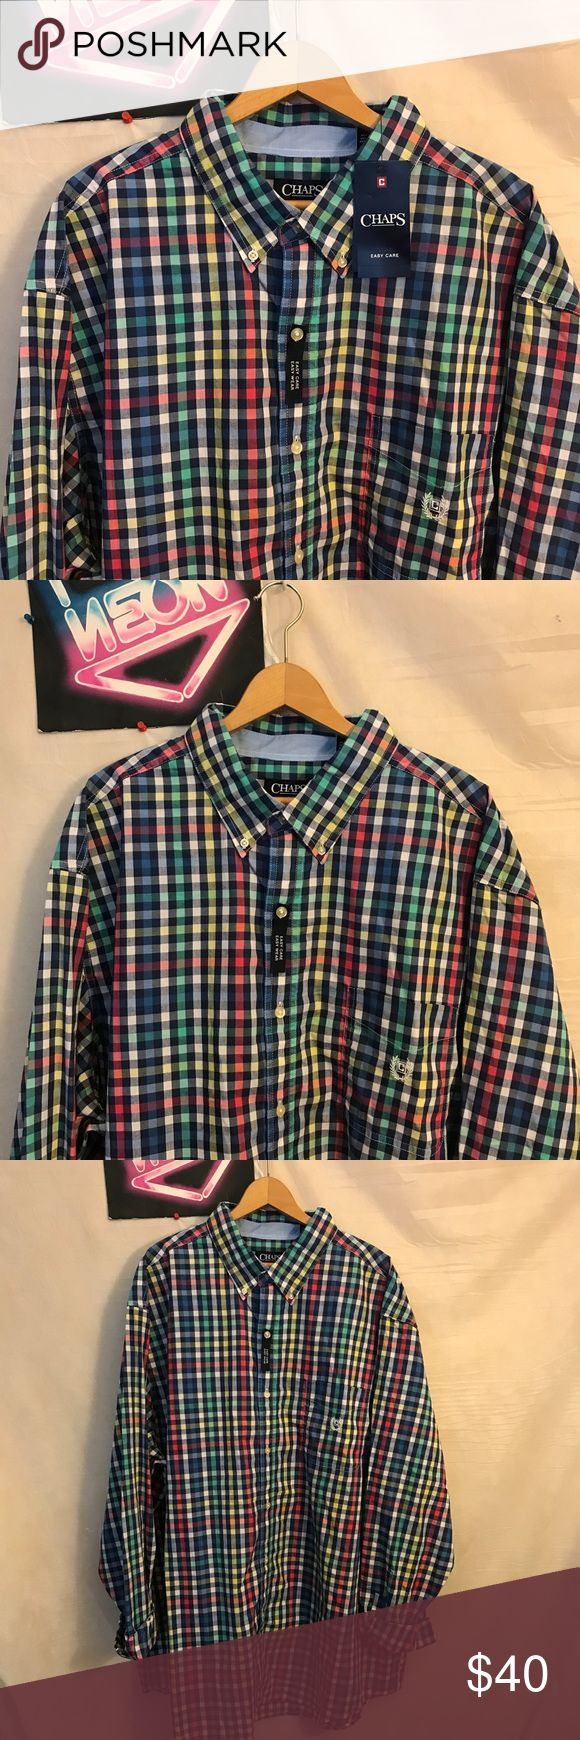 """NWT Chaps Men's  Button Front Shirt Sz 3XLT A1922 NWT Chaps Men's Check Button Front Long Sleeve Shirt Sz 3XLT, pit to pit - 31"""", shoulder to hem - 35"""", new with tags, ships from smoke free facility, thank you Chaps Shirts Casual Button Down Shirts"""